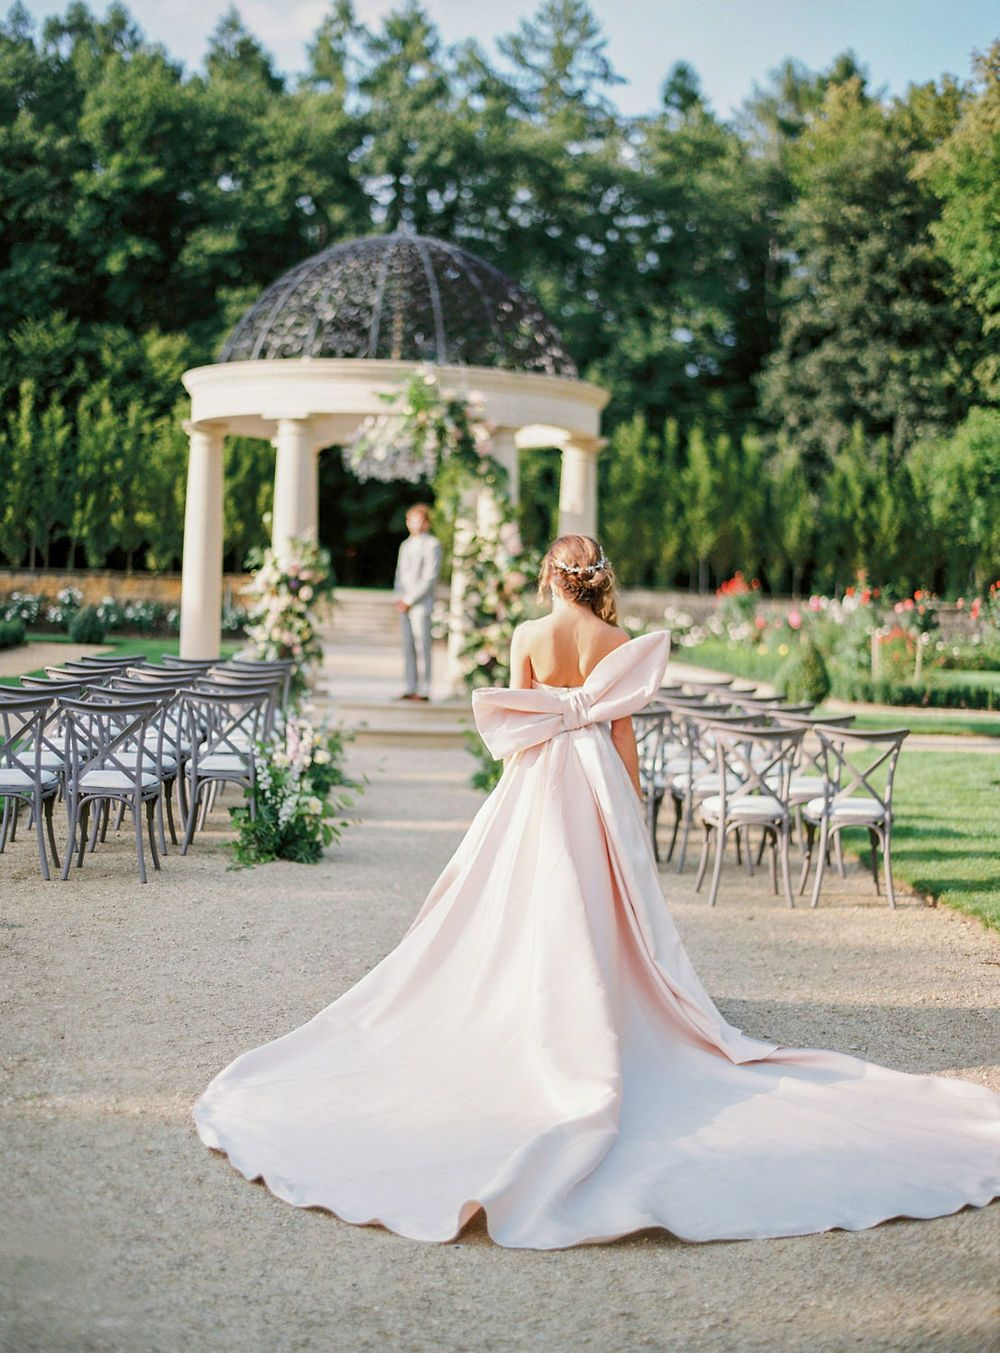 6d2902c5cc8 This European garden wedding inspiration looks straight out of a fairytale